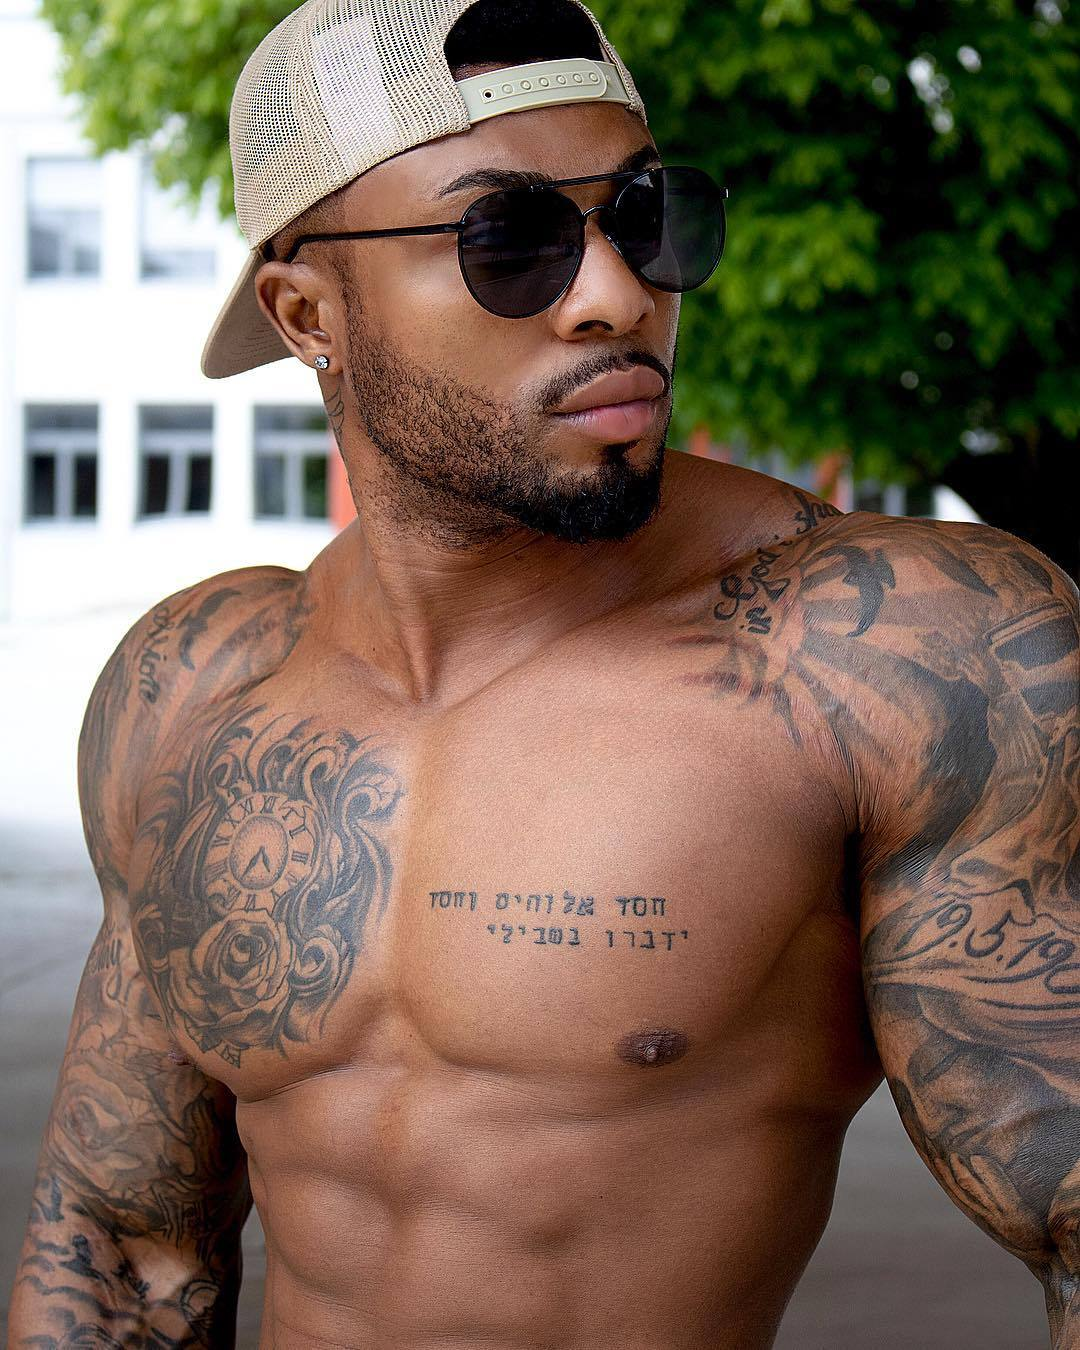 Black Men With Tattoos : black, tattoos, Black, Tattoos